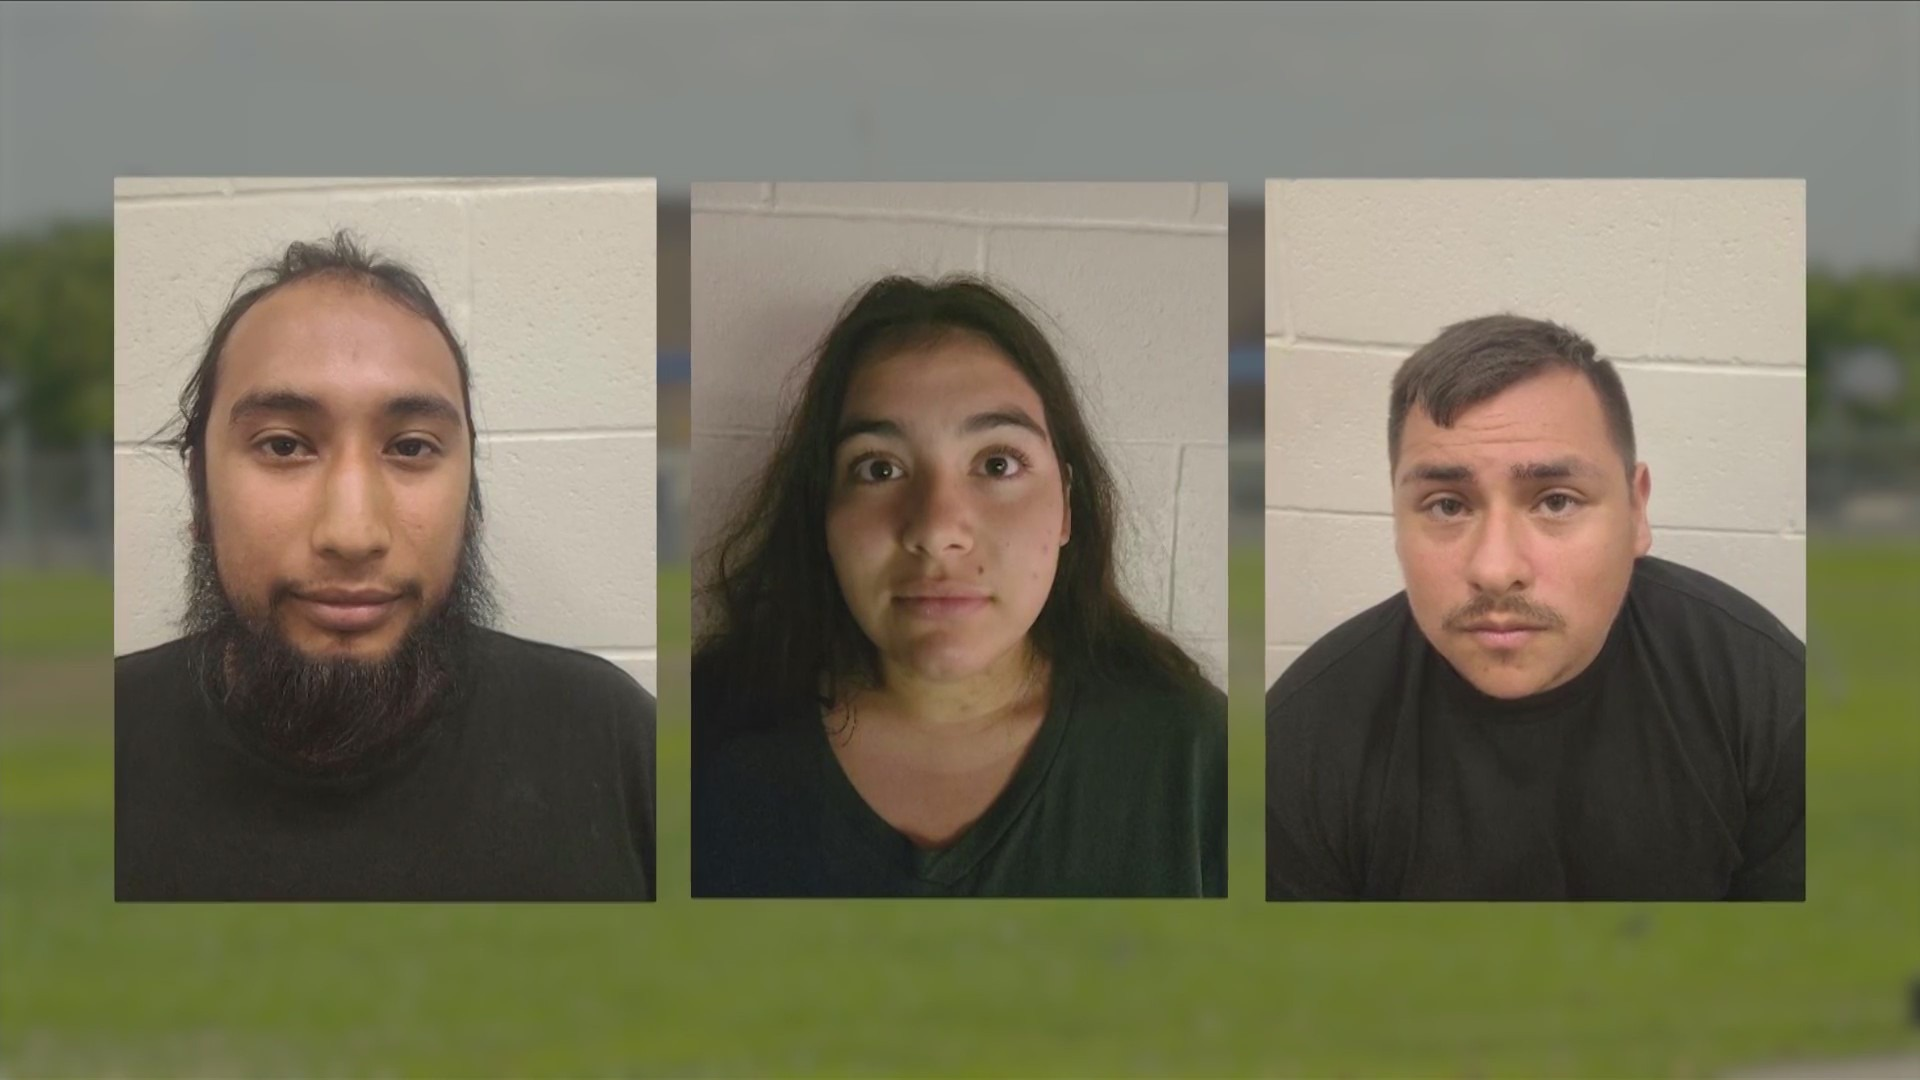 Message to Kingsburg residents after 3 arrested in reckless shooting incident